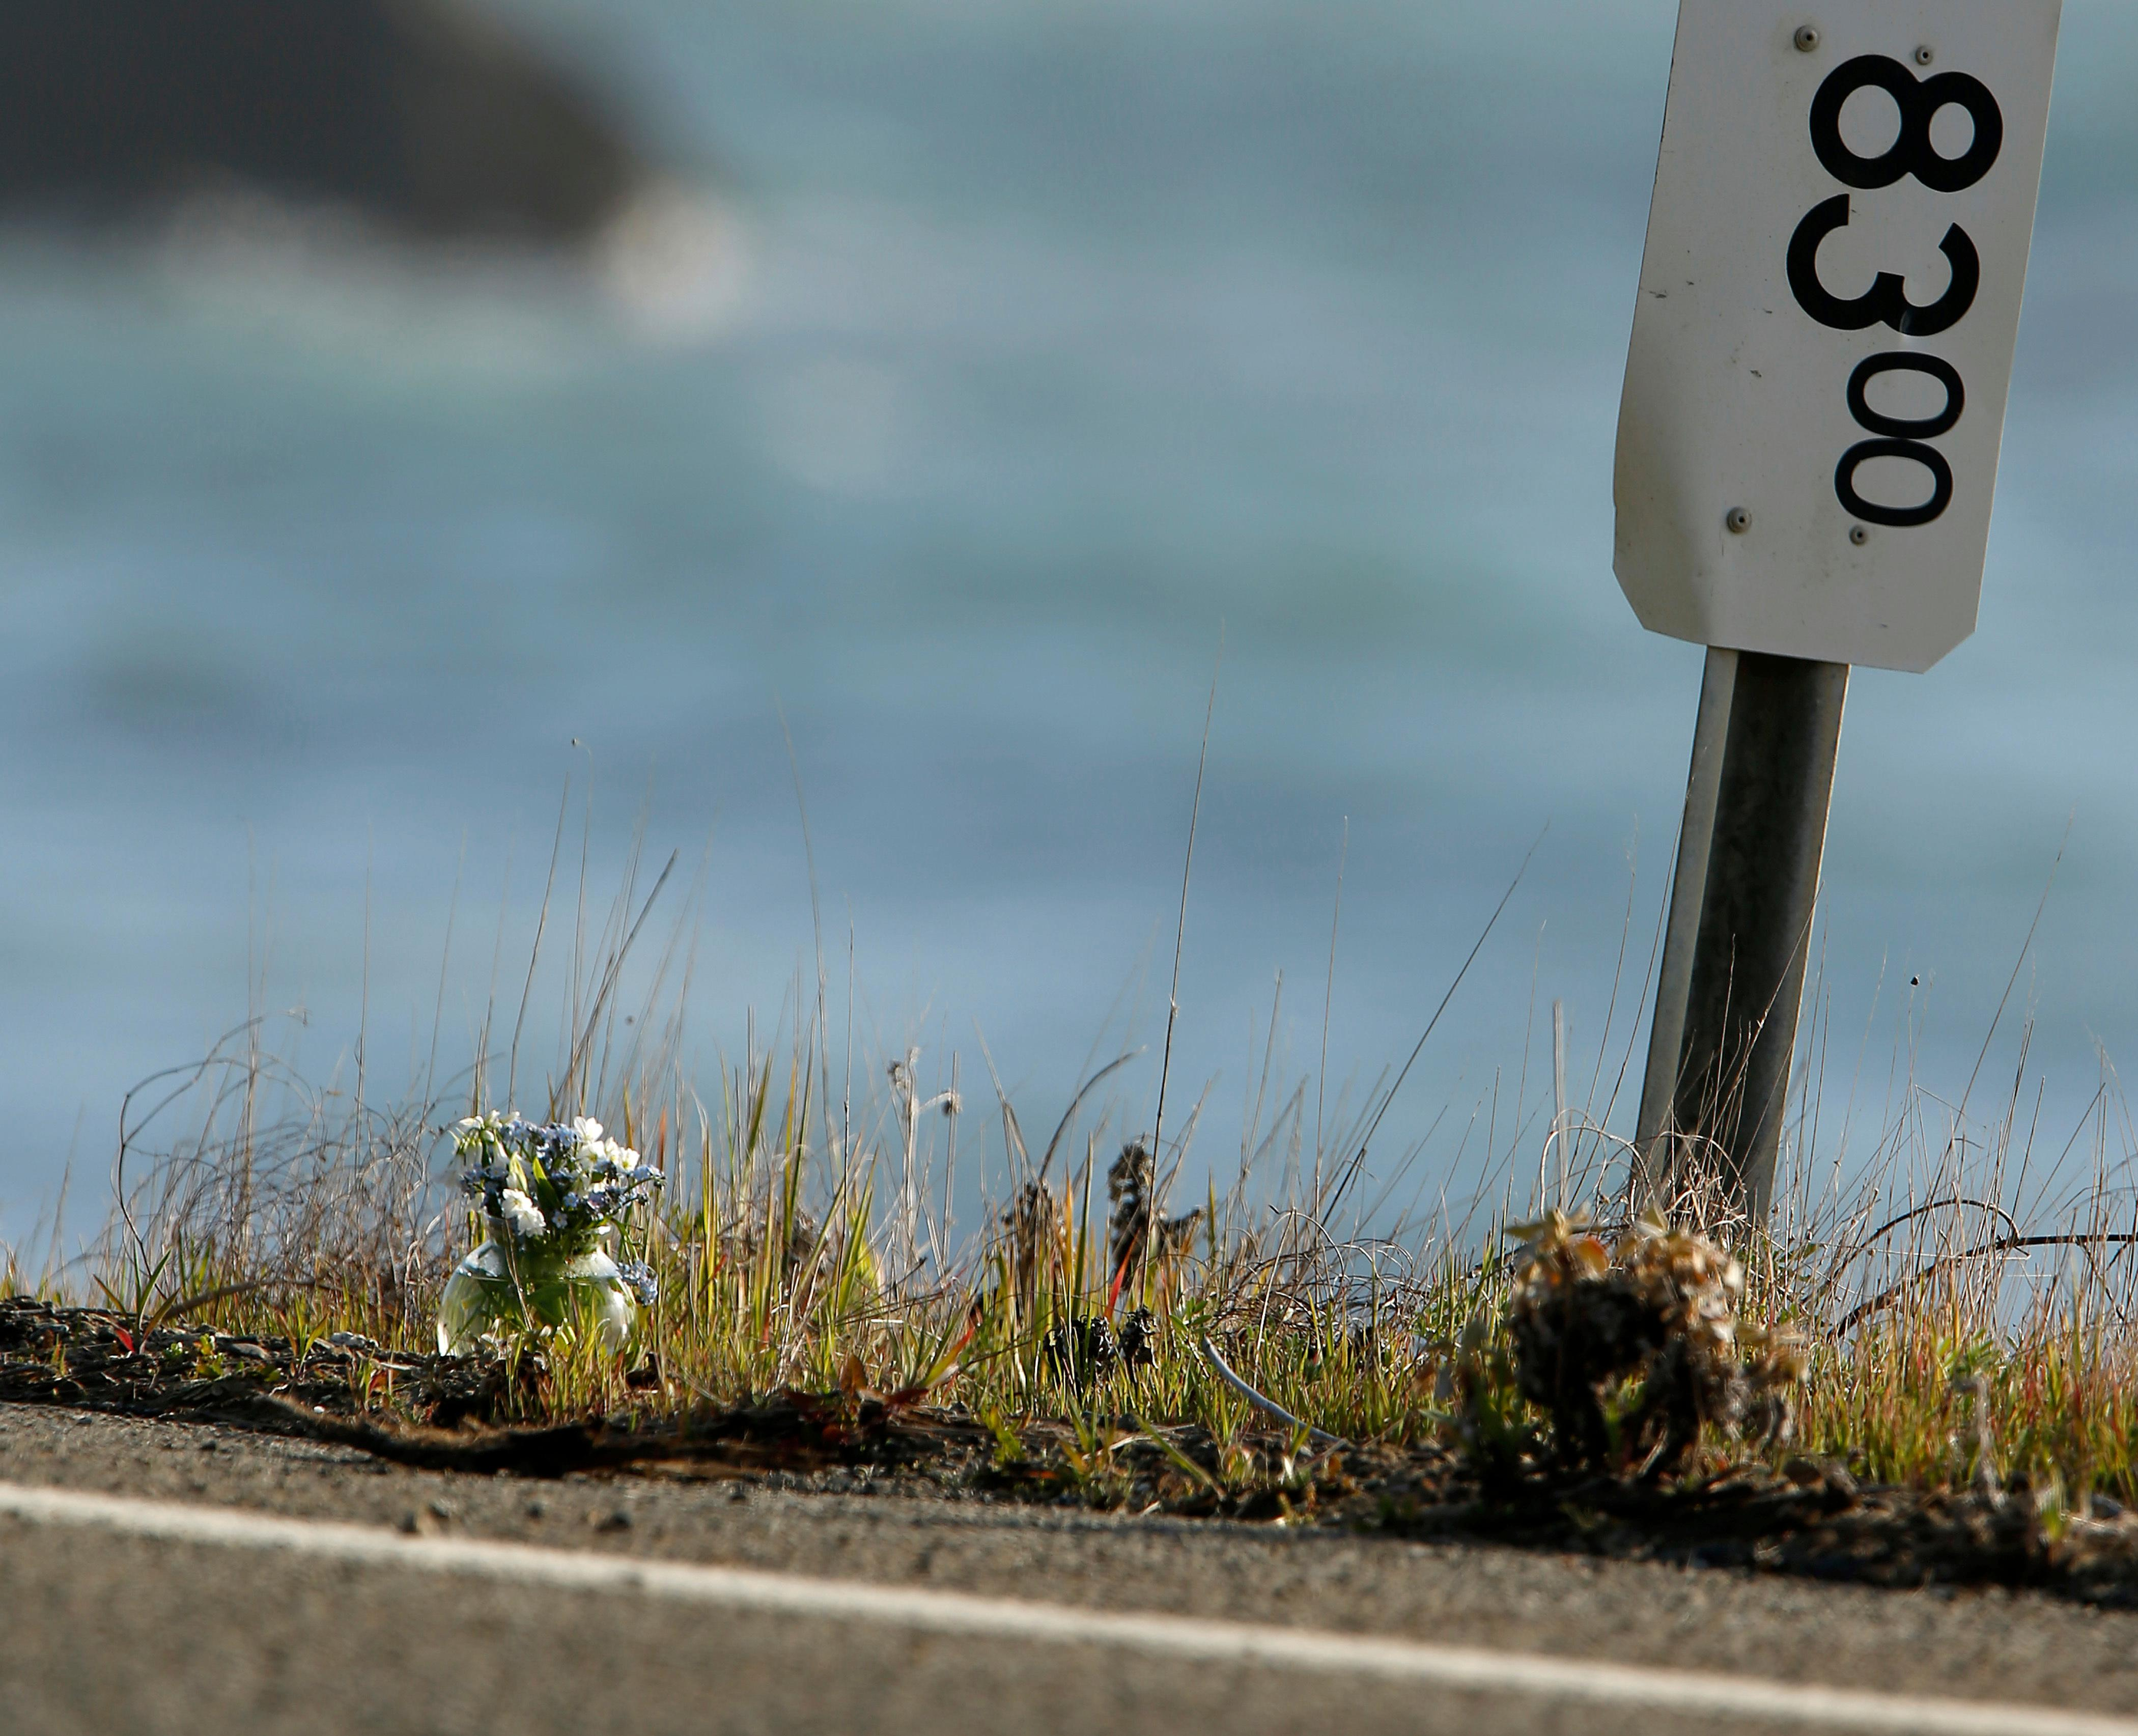 A small vase of flowers, at left, sits beside a mile marker Wednesday, March 28, 2018, near the pullout where the SUV of Jennifer and Sarah Hart was recovered off the Pacific Coast Highway near Westport, Calif. The bodies of the two women and three of their adopted children were recovered after the vehicle plunged over the cliff two days earlier, while three more of their children, Devonte Hart, 15, Hannah Hart, 16, and Sierra Hart, 12, have not been found. (Alvin Jornada/The Press Democrat via AP)